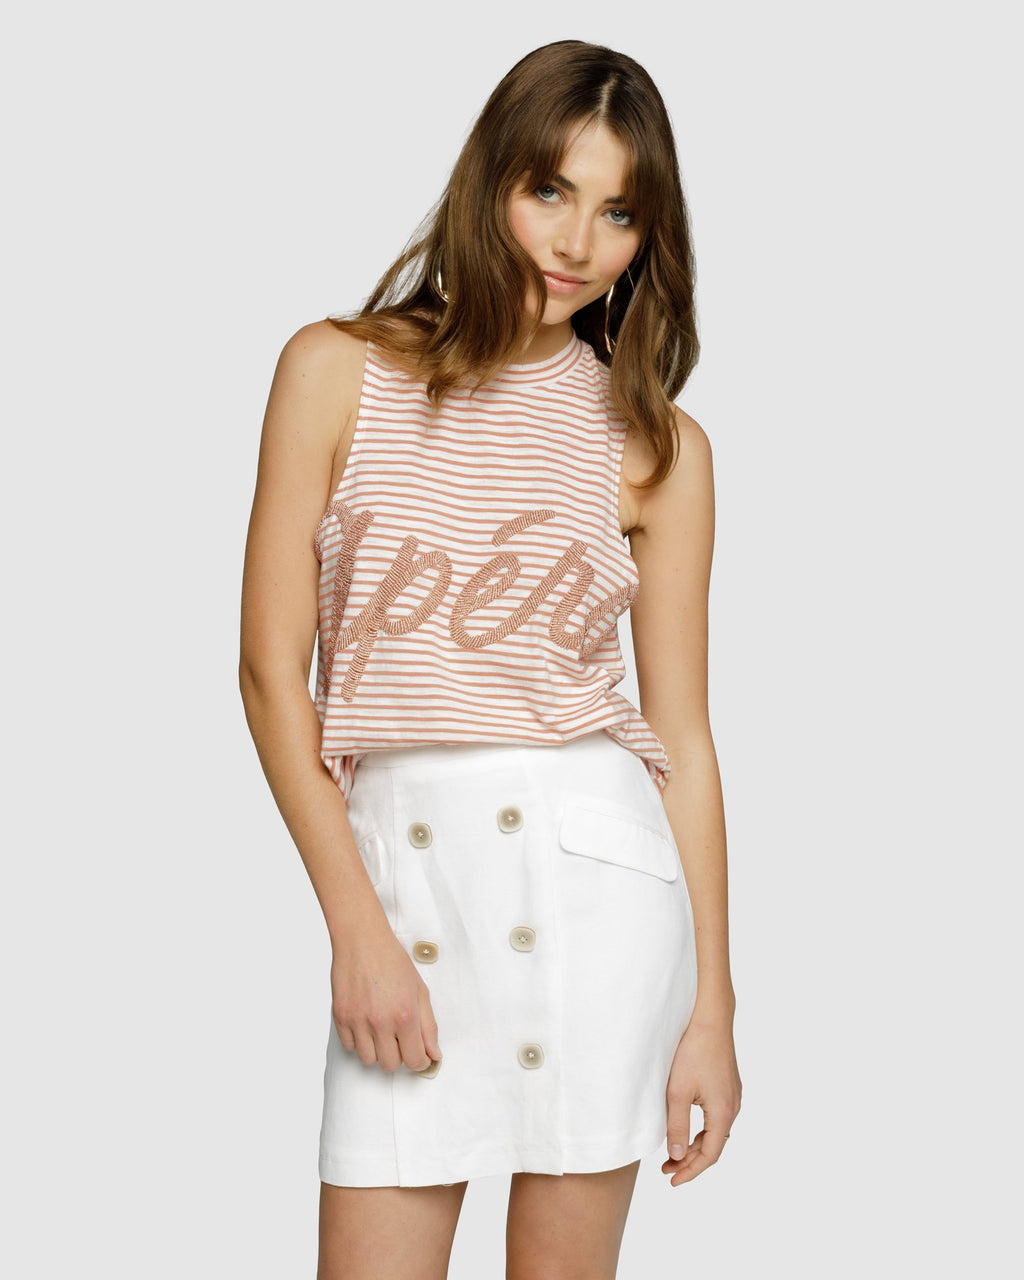 Grande Beaded Tank Top - Apero Dusty Pink/White Stripe sale